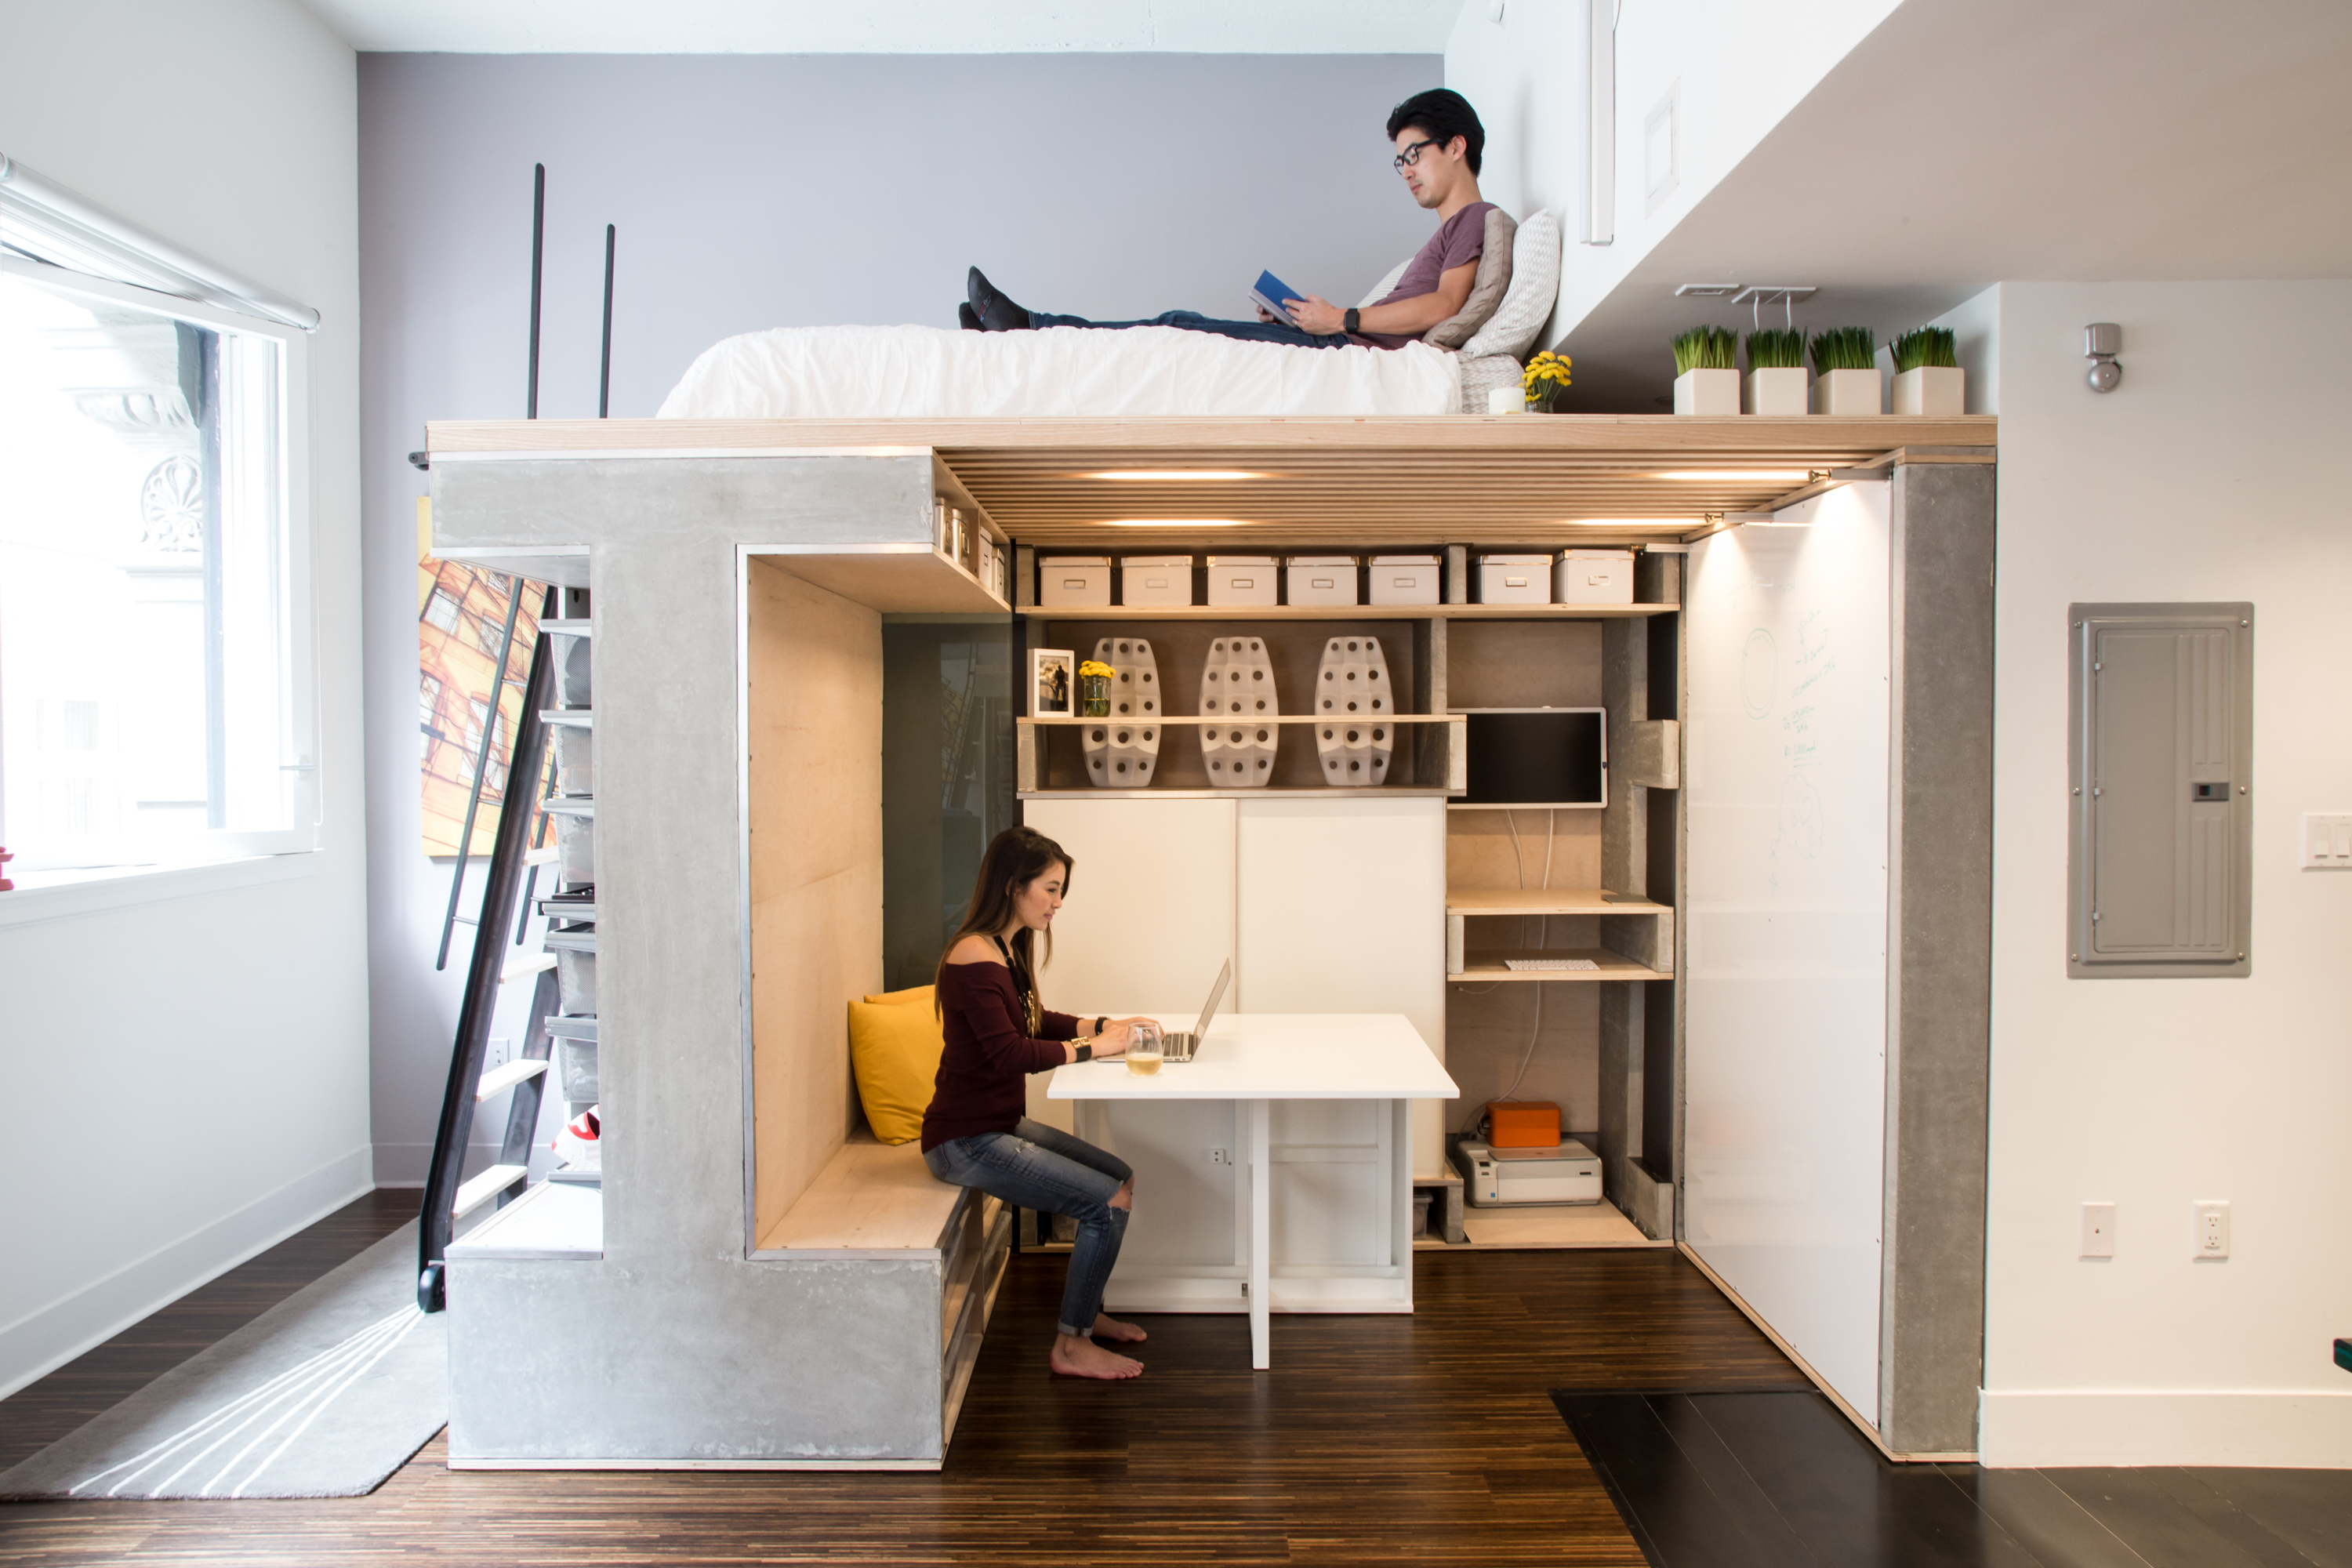 7 apartment in a box designs for tiny spaces curbed for Small studio furniture ideas